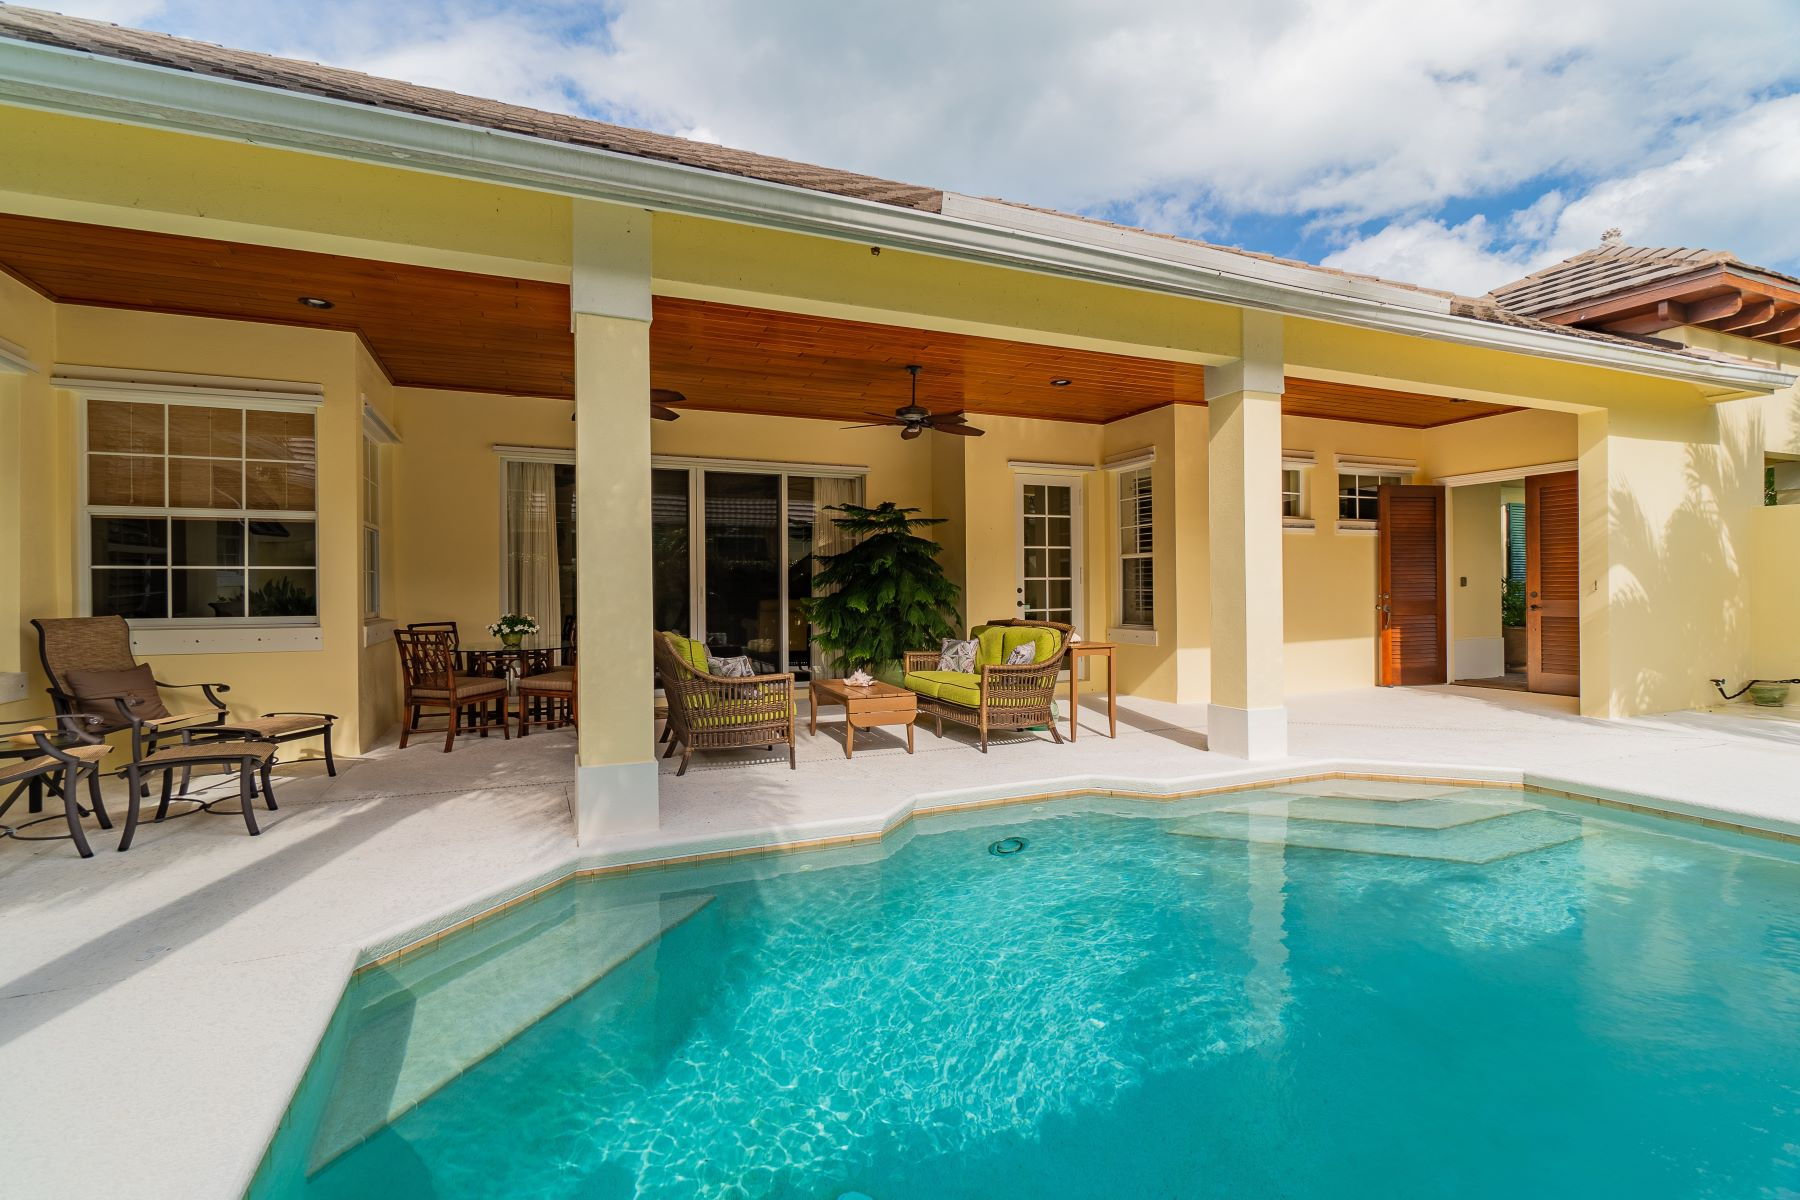 Additional photo for property listing at The Best of Seasons in Design and Architecture 9215 Spring Time Drive Vero Beach, Florida 32963 United States